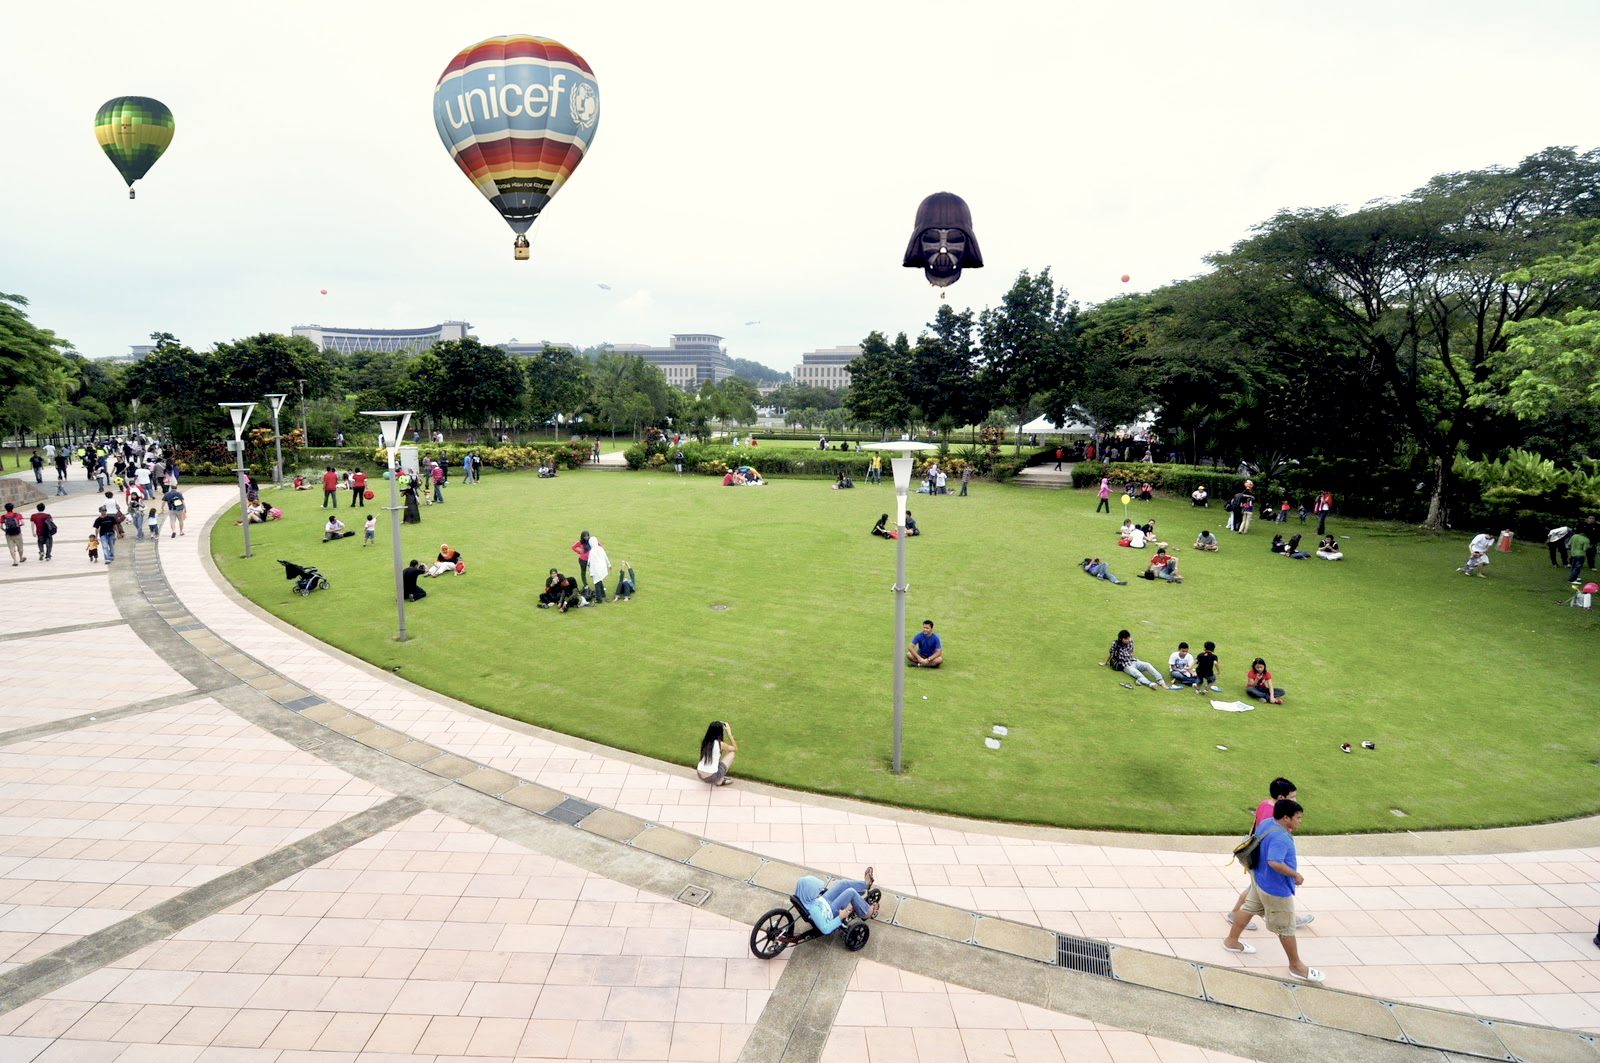 Have Breakfast with Balloons! Only at The 6th Putrajaya International Hot Air Balloon Fiesta, 27-30 March